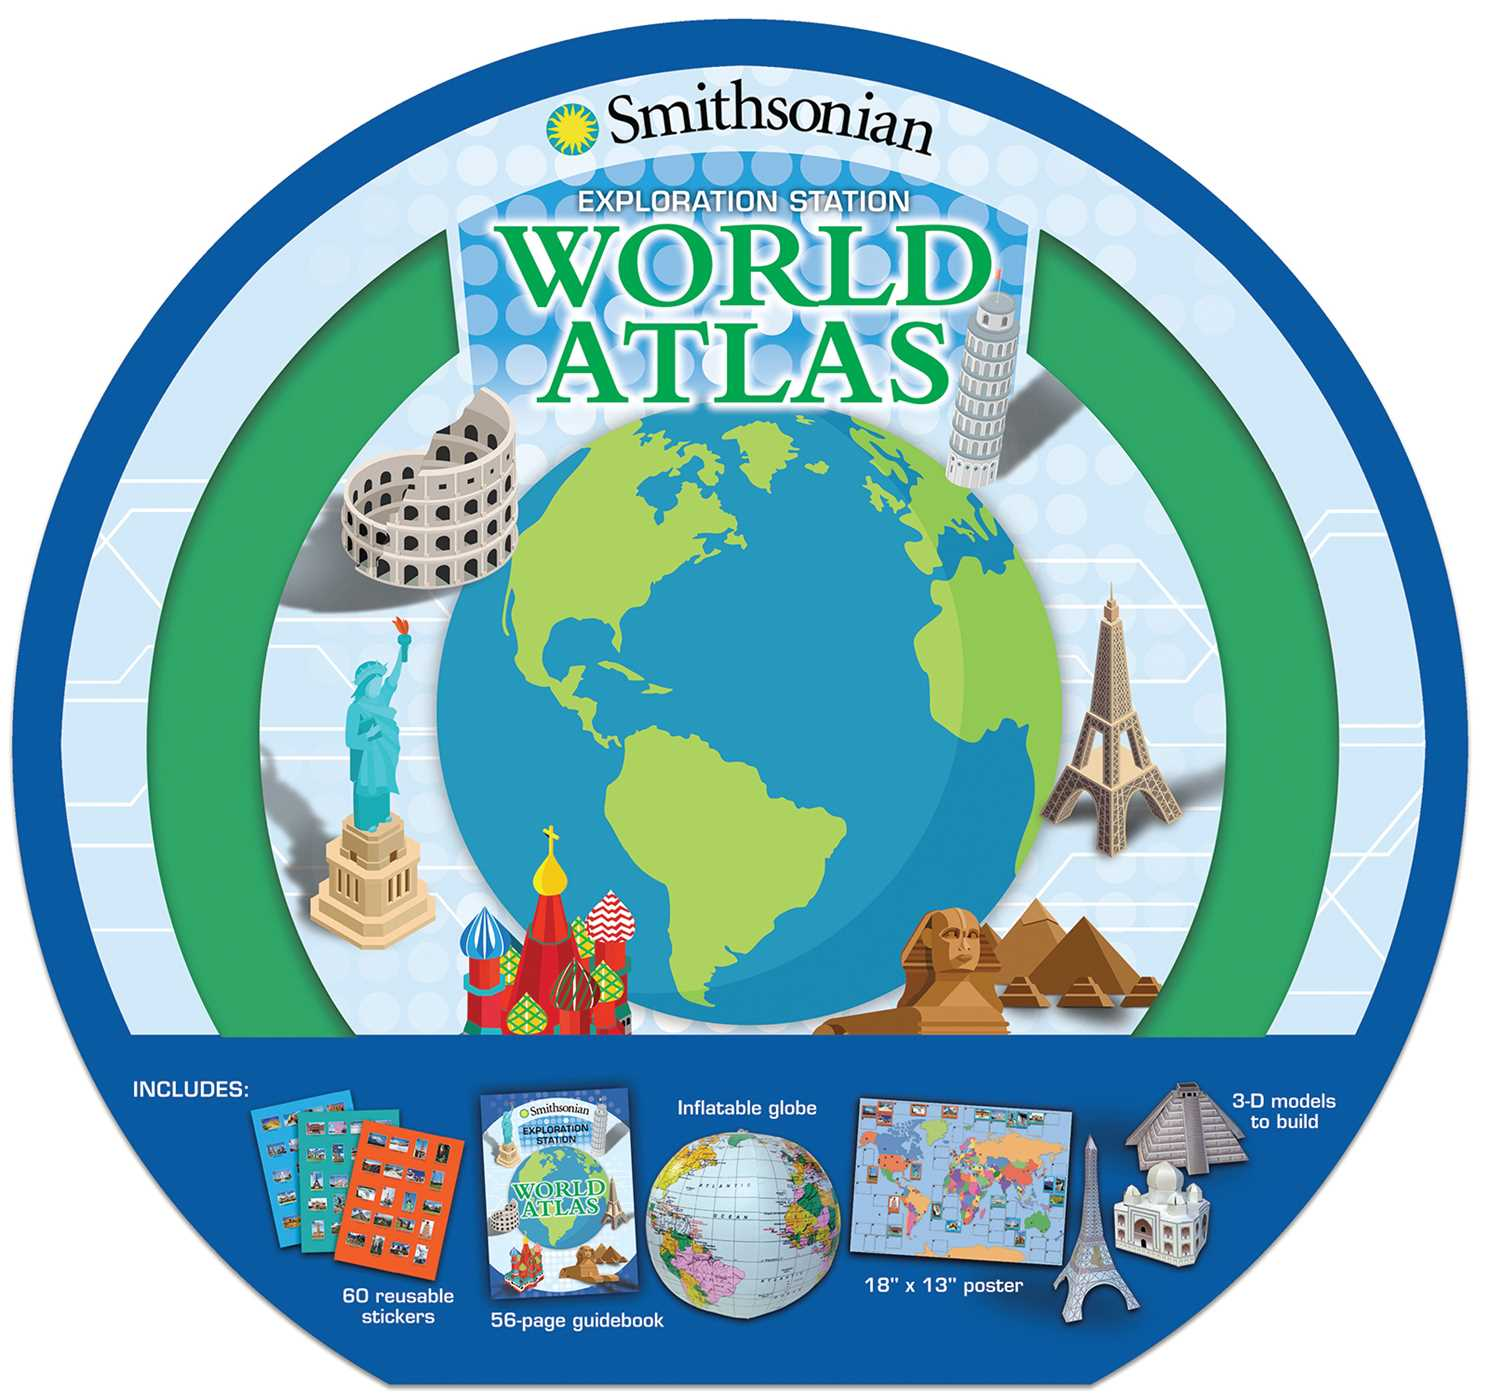 Smithsonian exploration station world atlas 9781626867208 hr